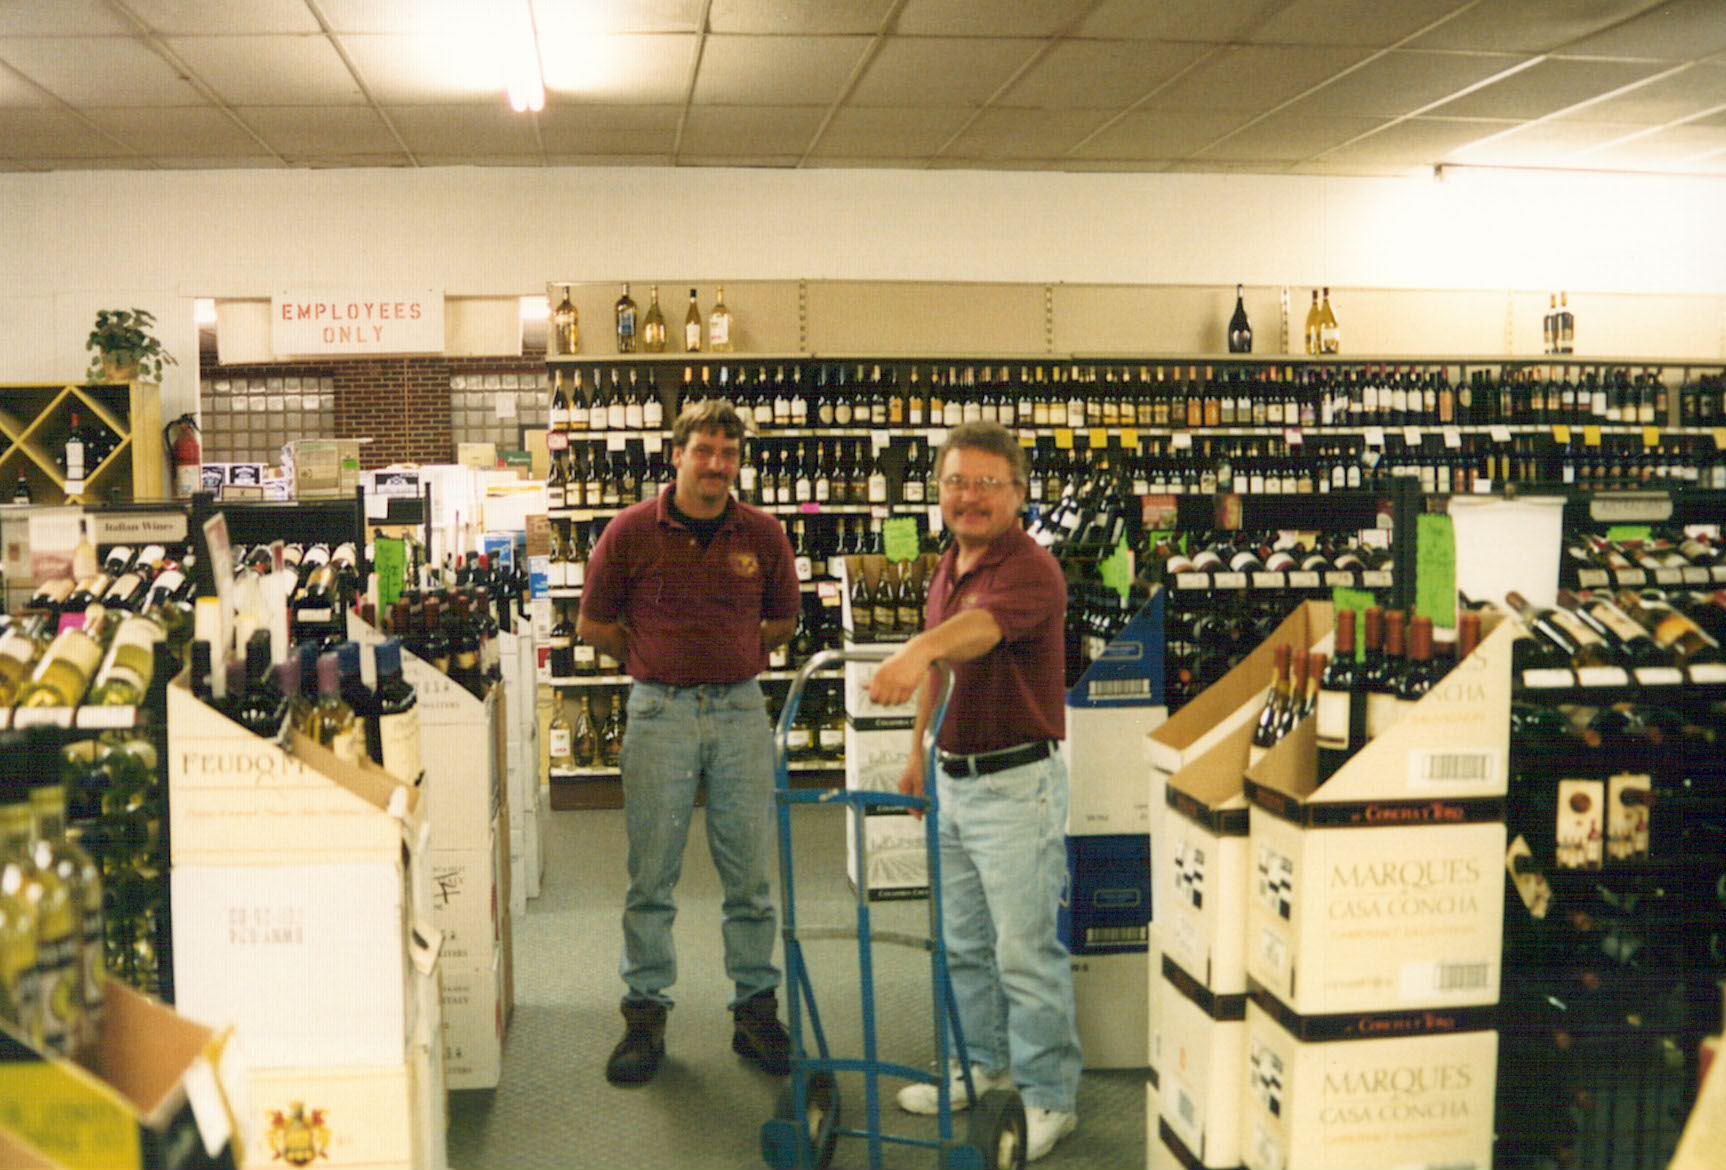 Bremer's employees Wayne and Ziggy, working at the former store location on Commercial Dr. circa 1999-2000